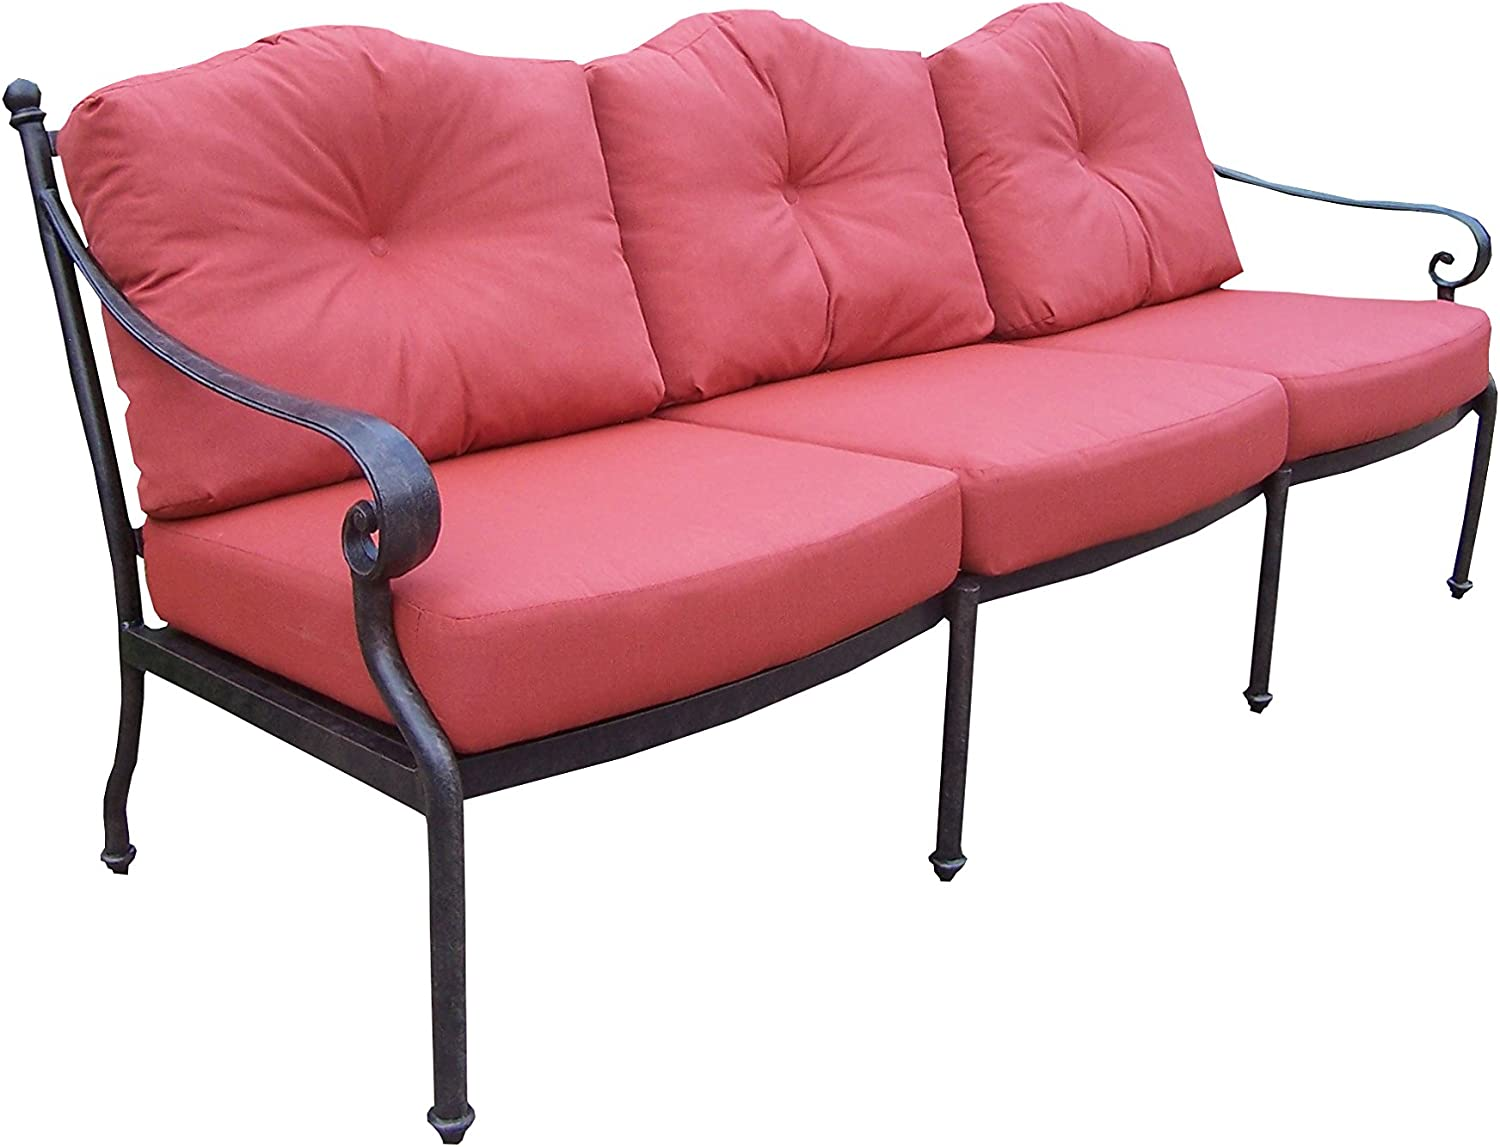 Oakland Living Berkley Deep Sitting with Cushions Spounpoly Low price Sofa shopping